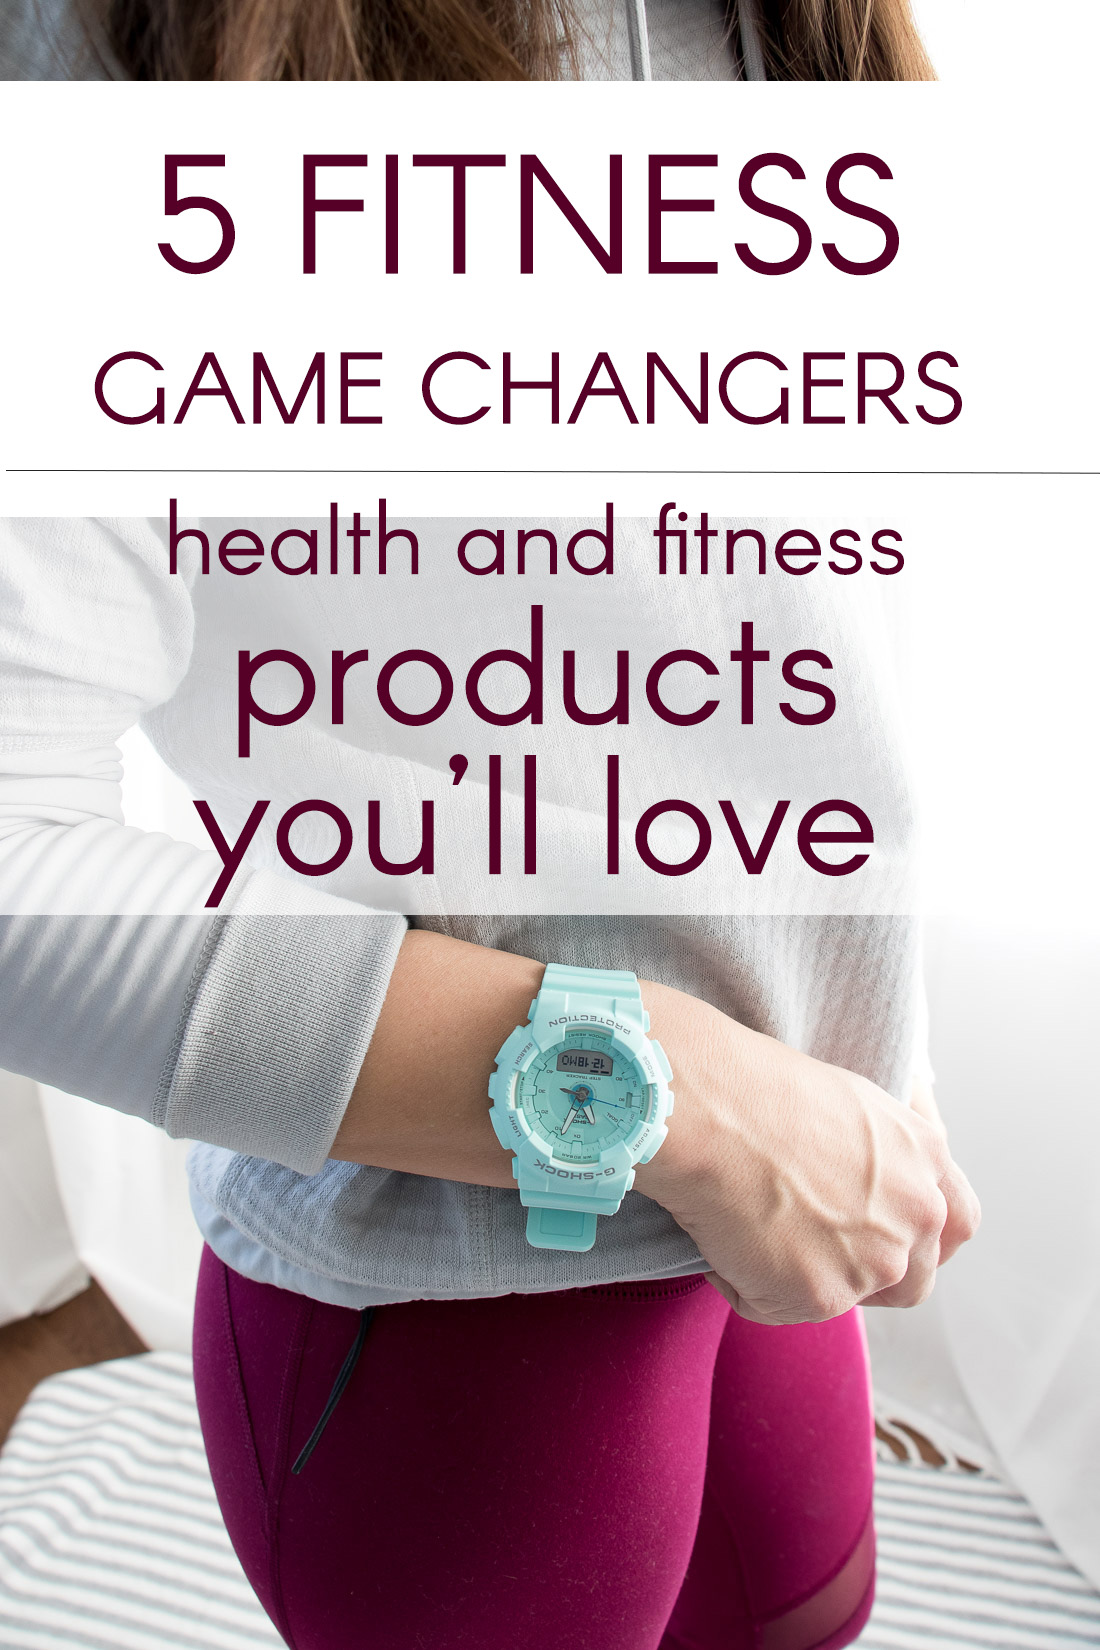 Five health and fitness products you should try.